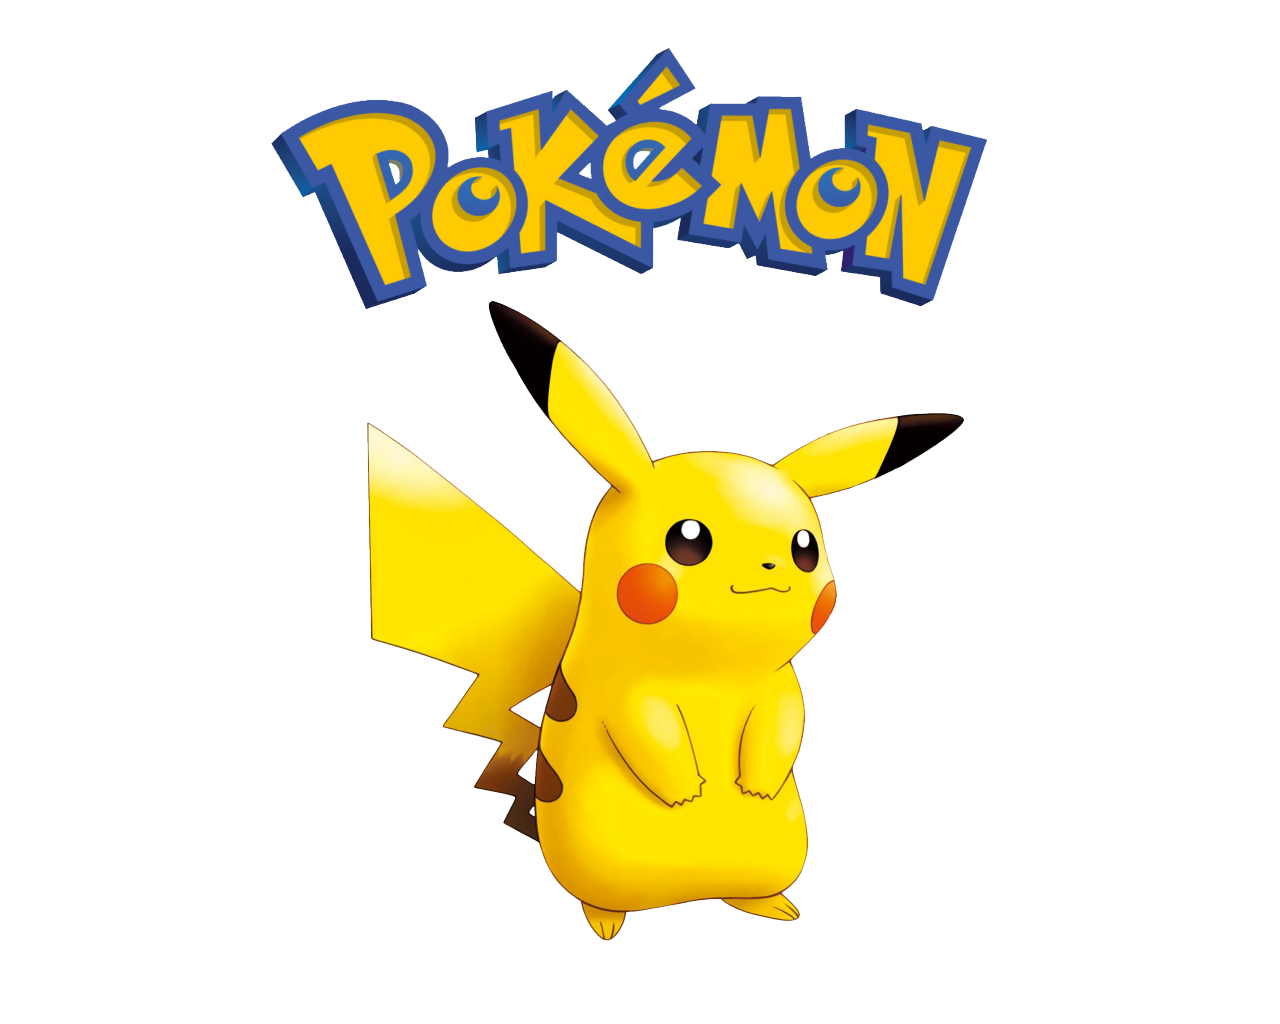 Pokemon Pikachu Wallpaper 1280x1024 Pokemon Pikachu 1280x1024